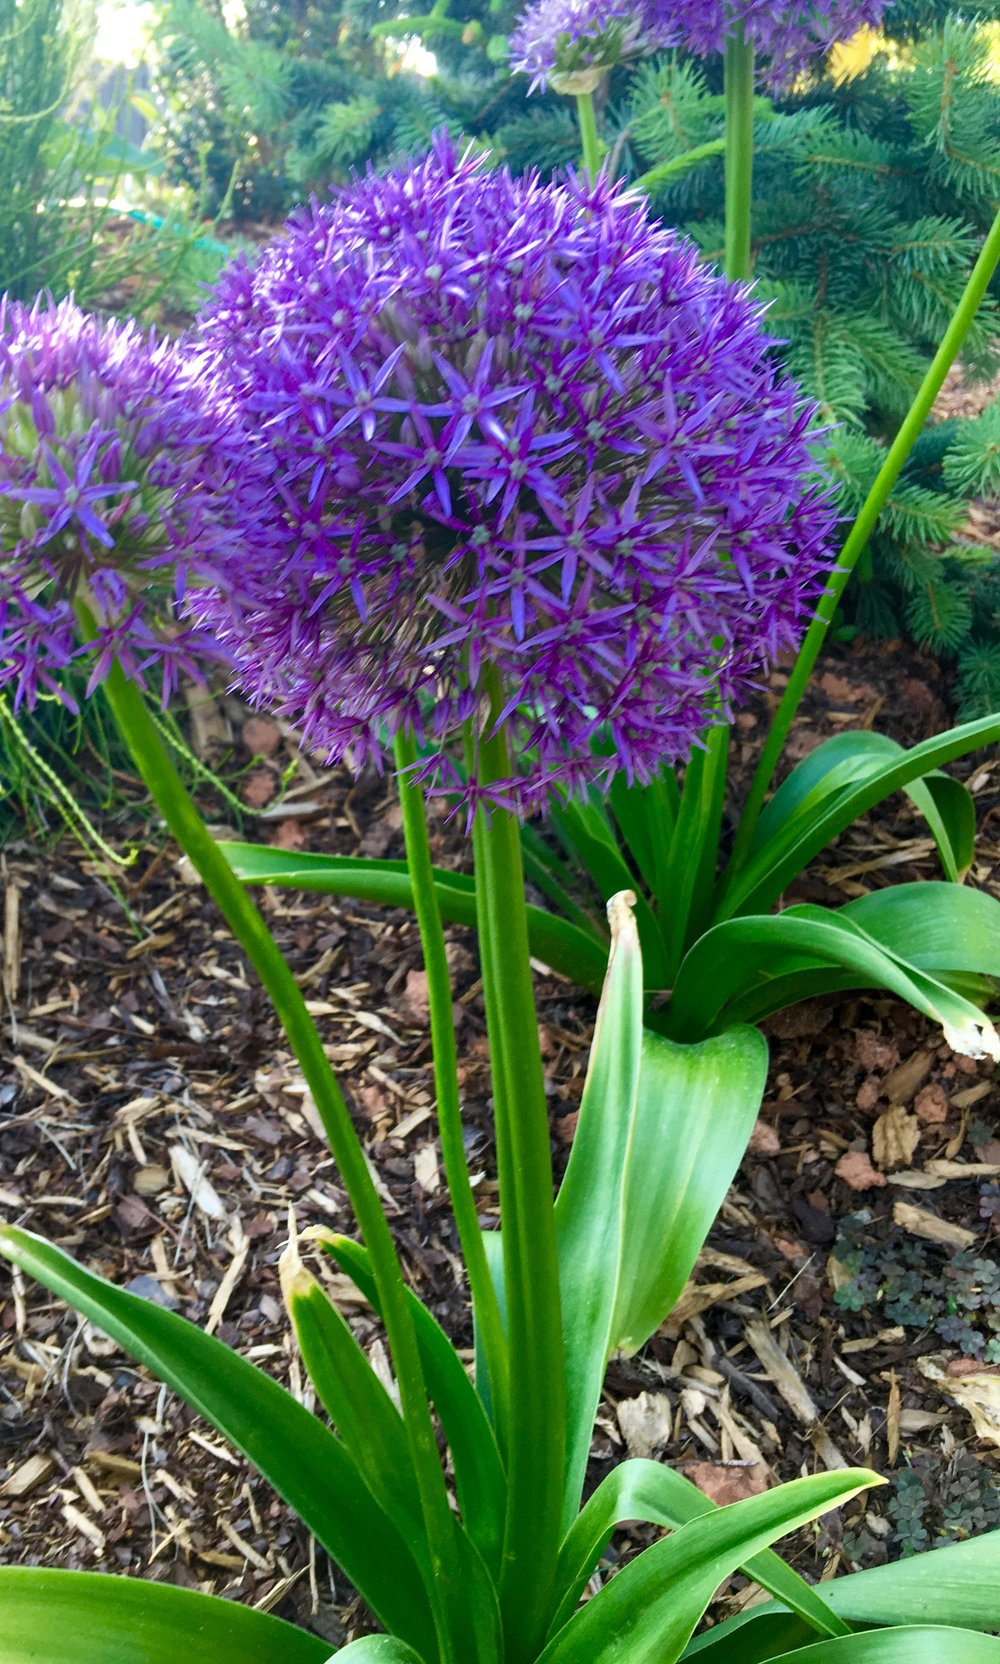 Allium is a great bulb because of its showy bloom, It's easy to see from far away, and great in pots.